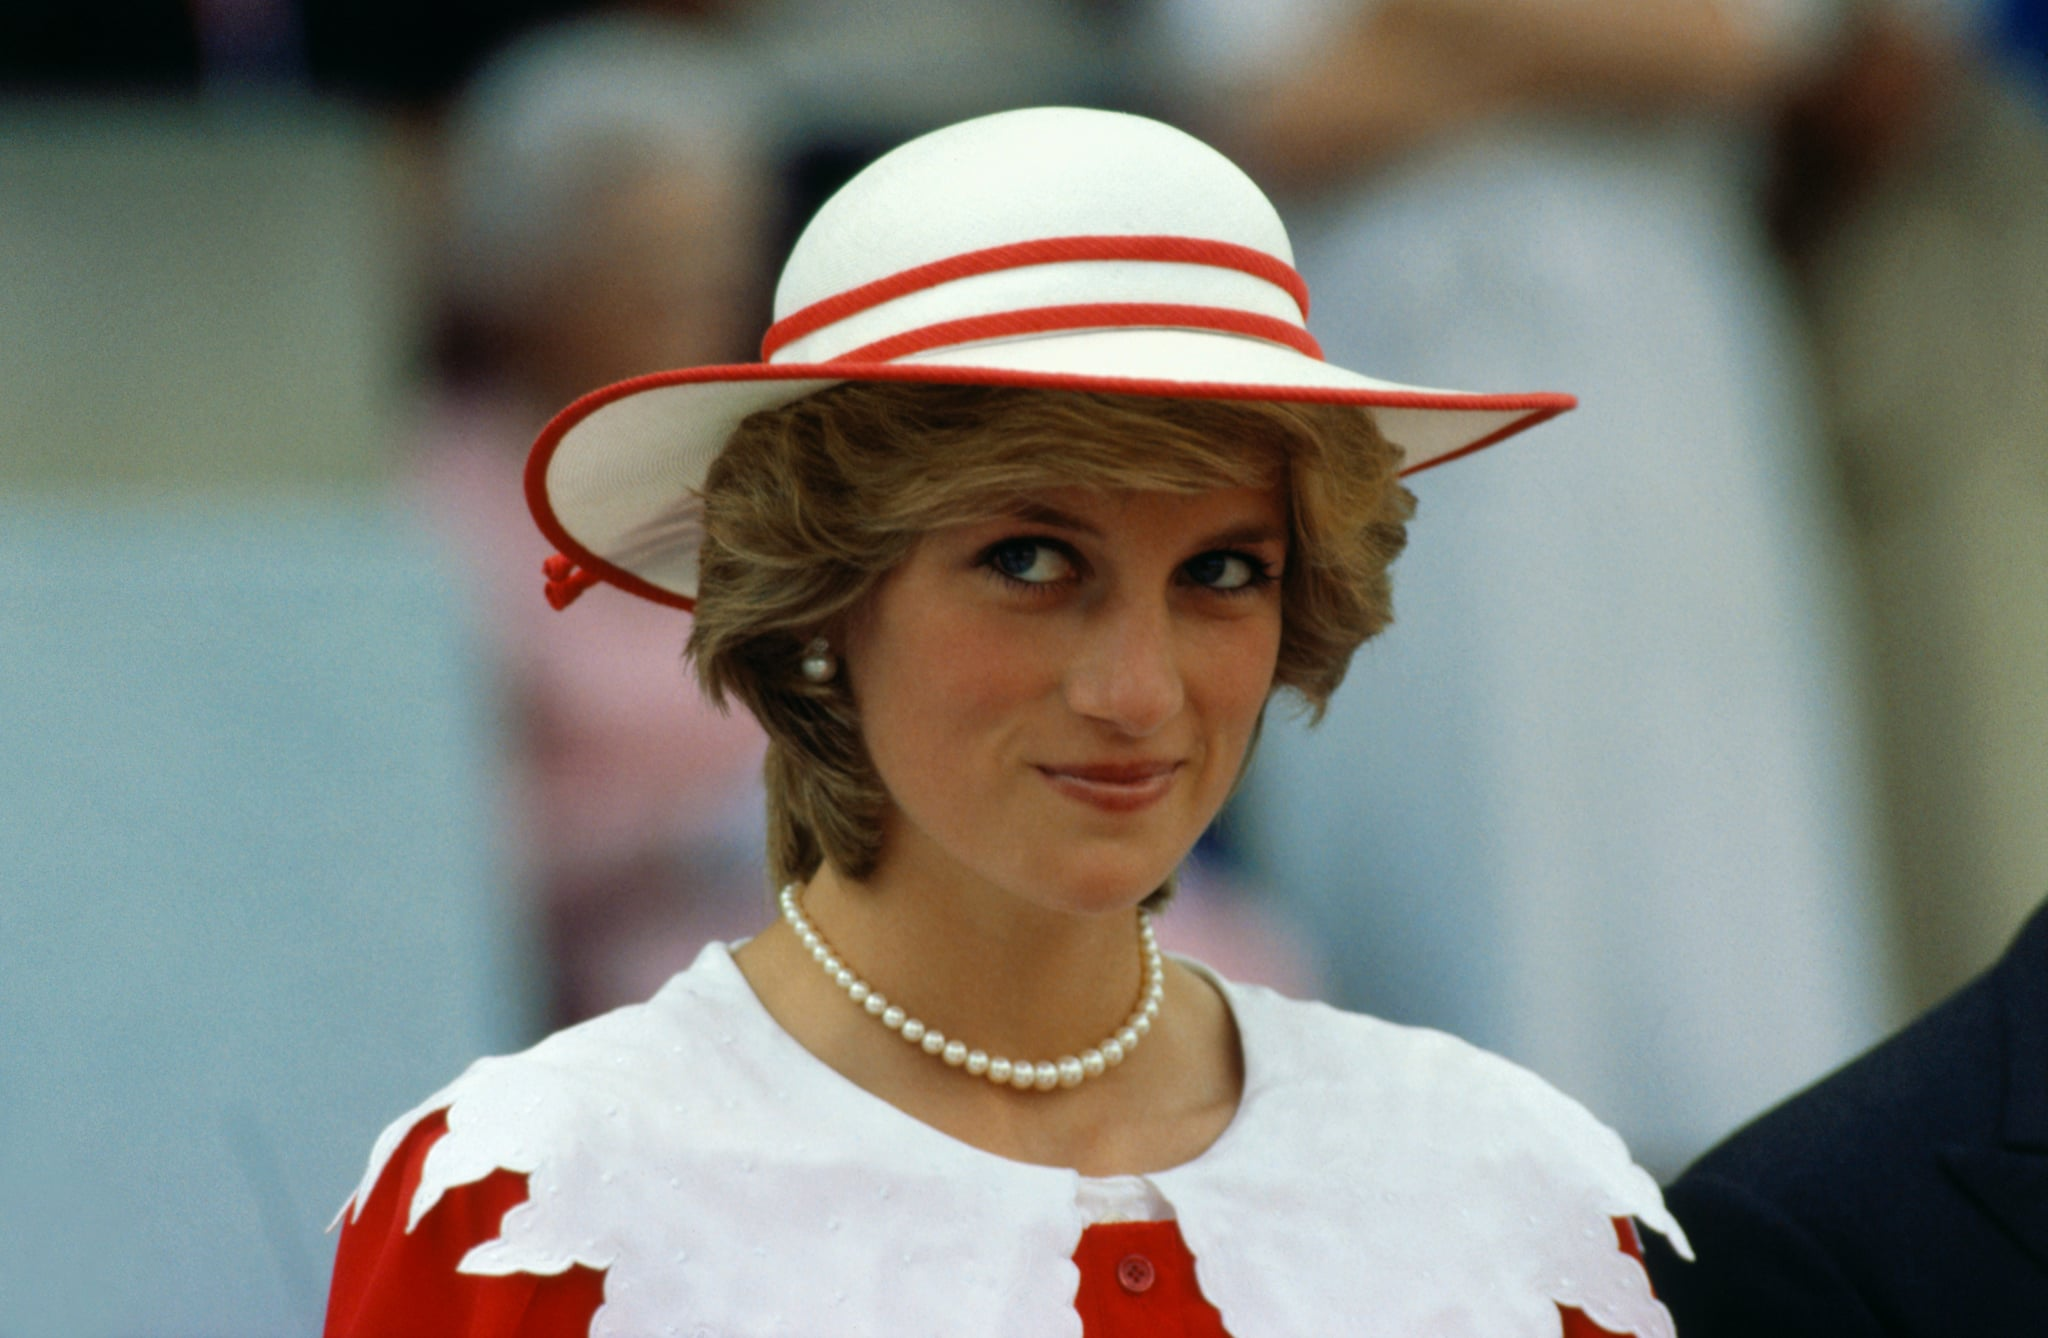 These Are the Schools That Educated Princess Diana Before She Became Royalty